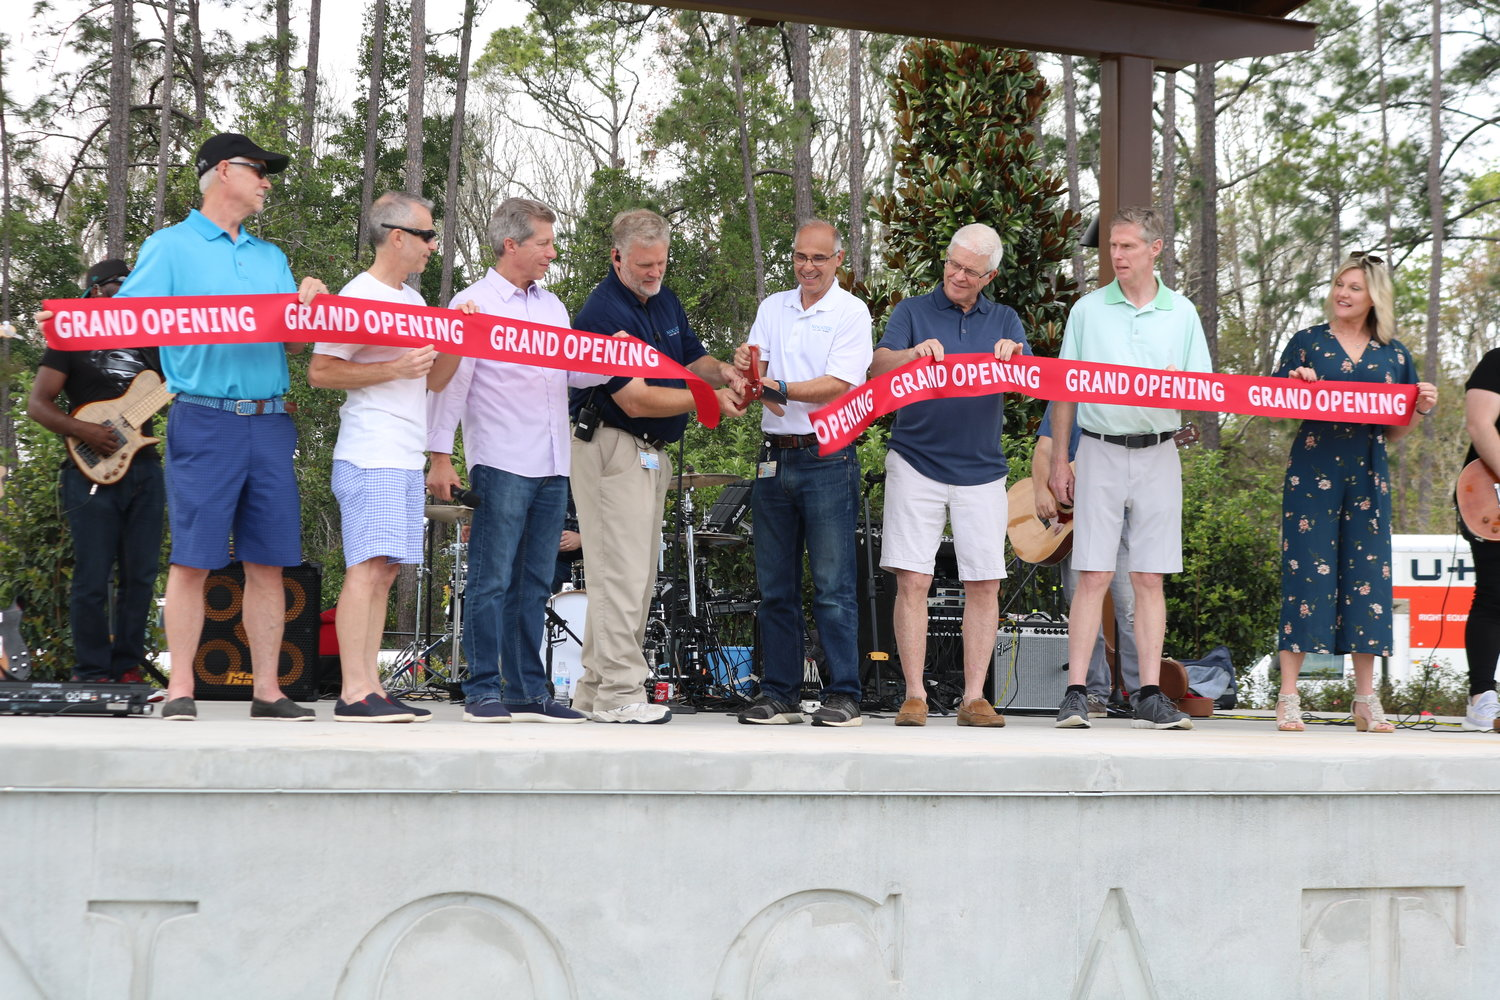 Representatives of the PARC Group and the Tolomato Community Development District participate in a ribbon-cutting ceremony to celebrate the grand opening of the Spray Water Park.